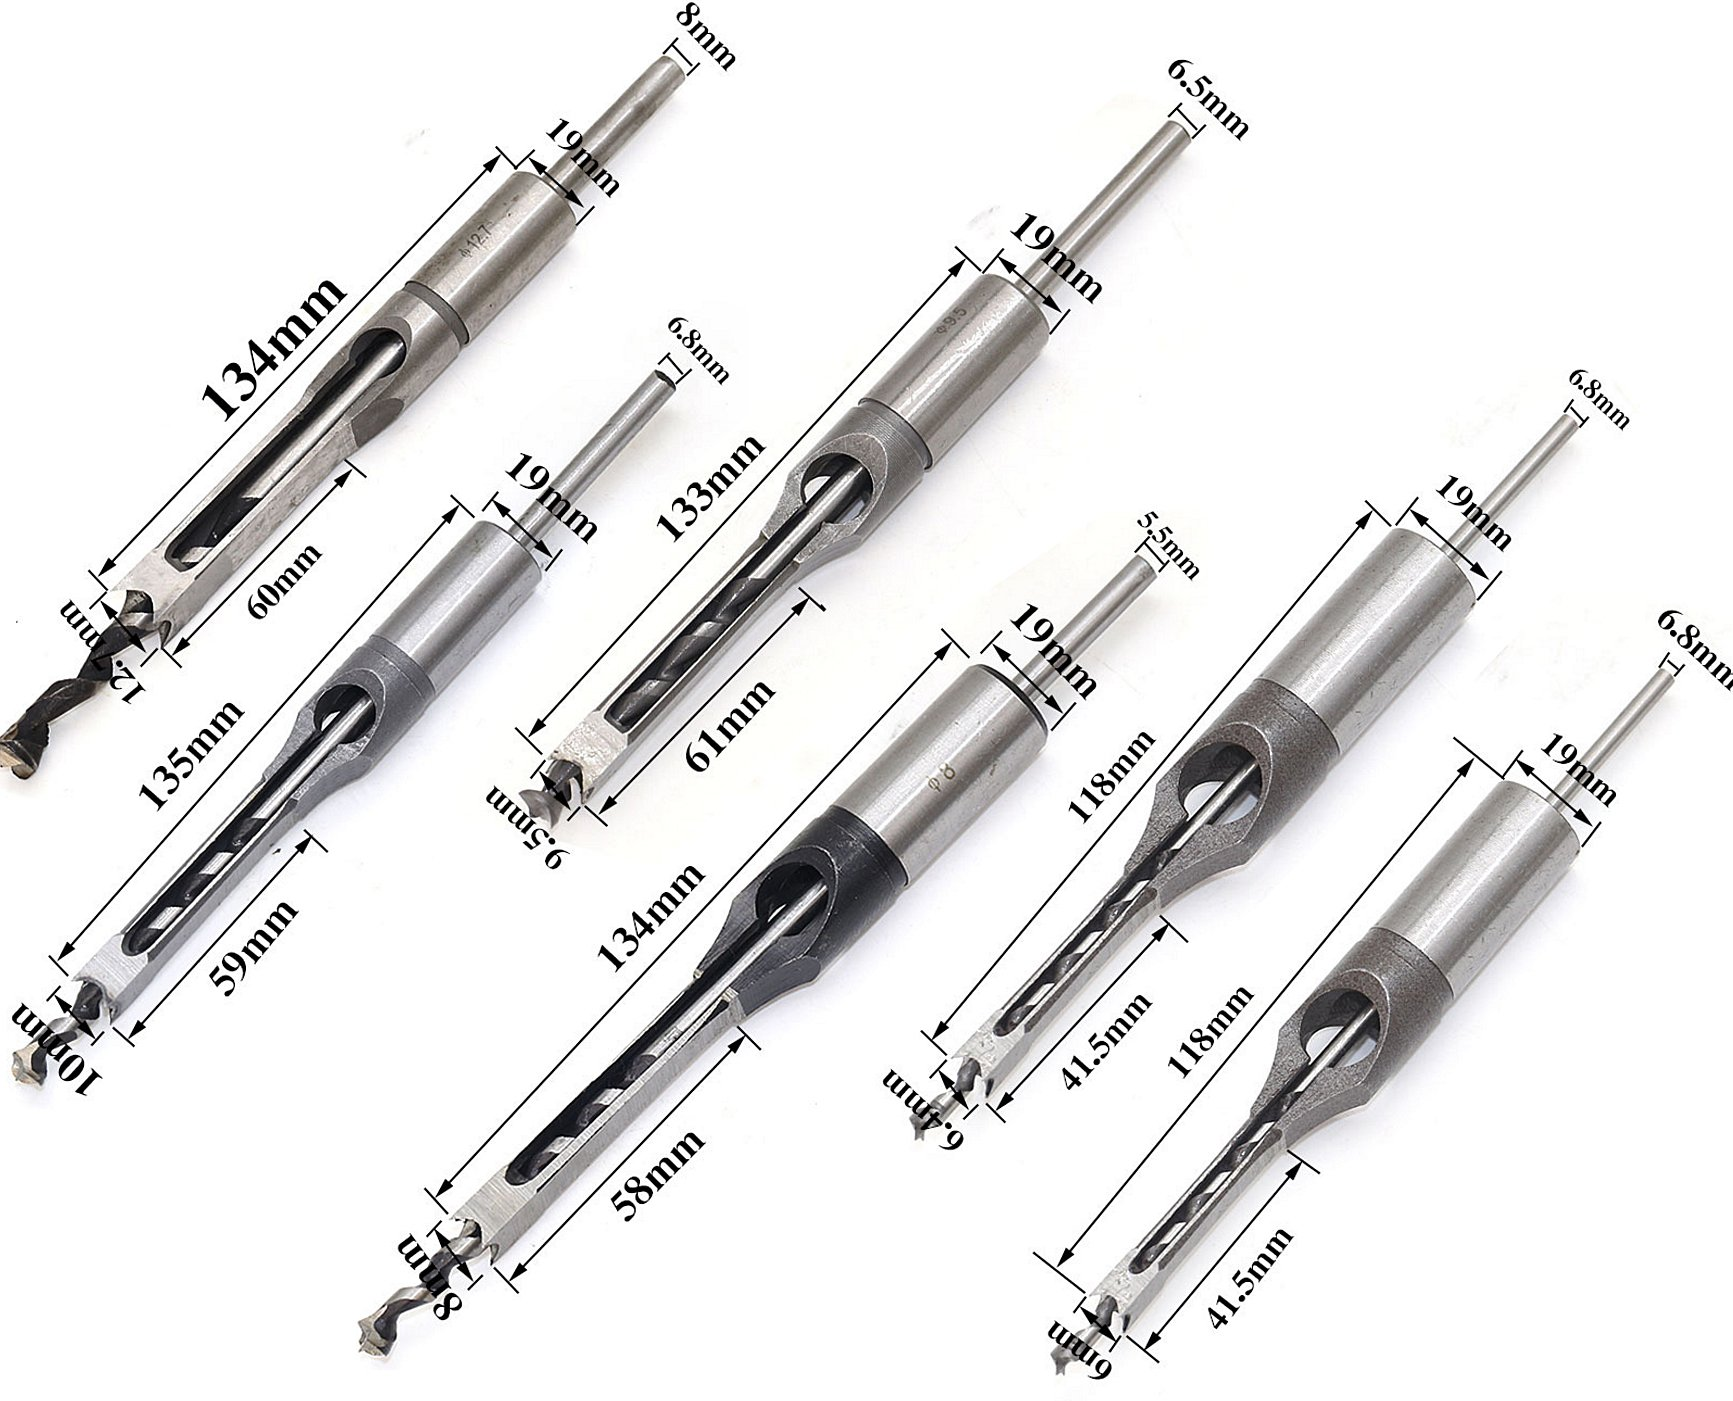 Square Hole Drill Bit, 6PCs and 7PCs Woodworking Square Hole Drill Bits Set, Stainless Steel Mortising Chisel Set with Twist Drill for Hole Opening, 6mm -30mm